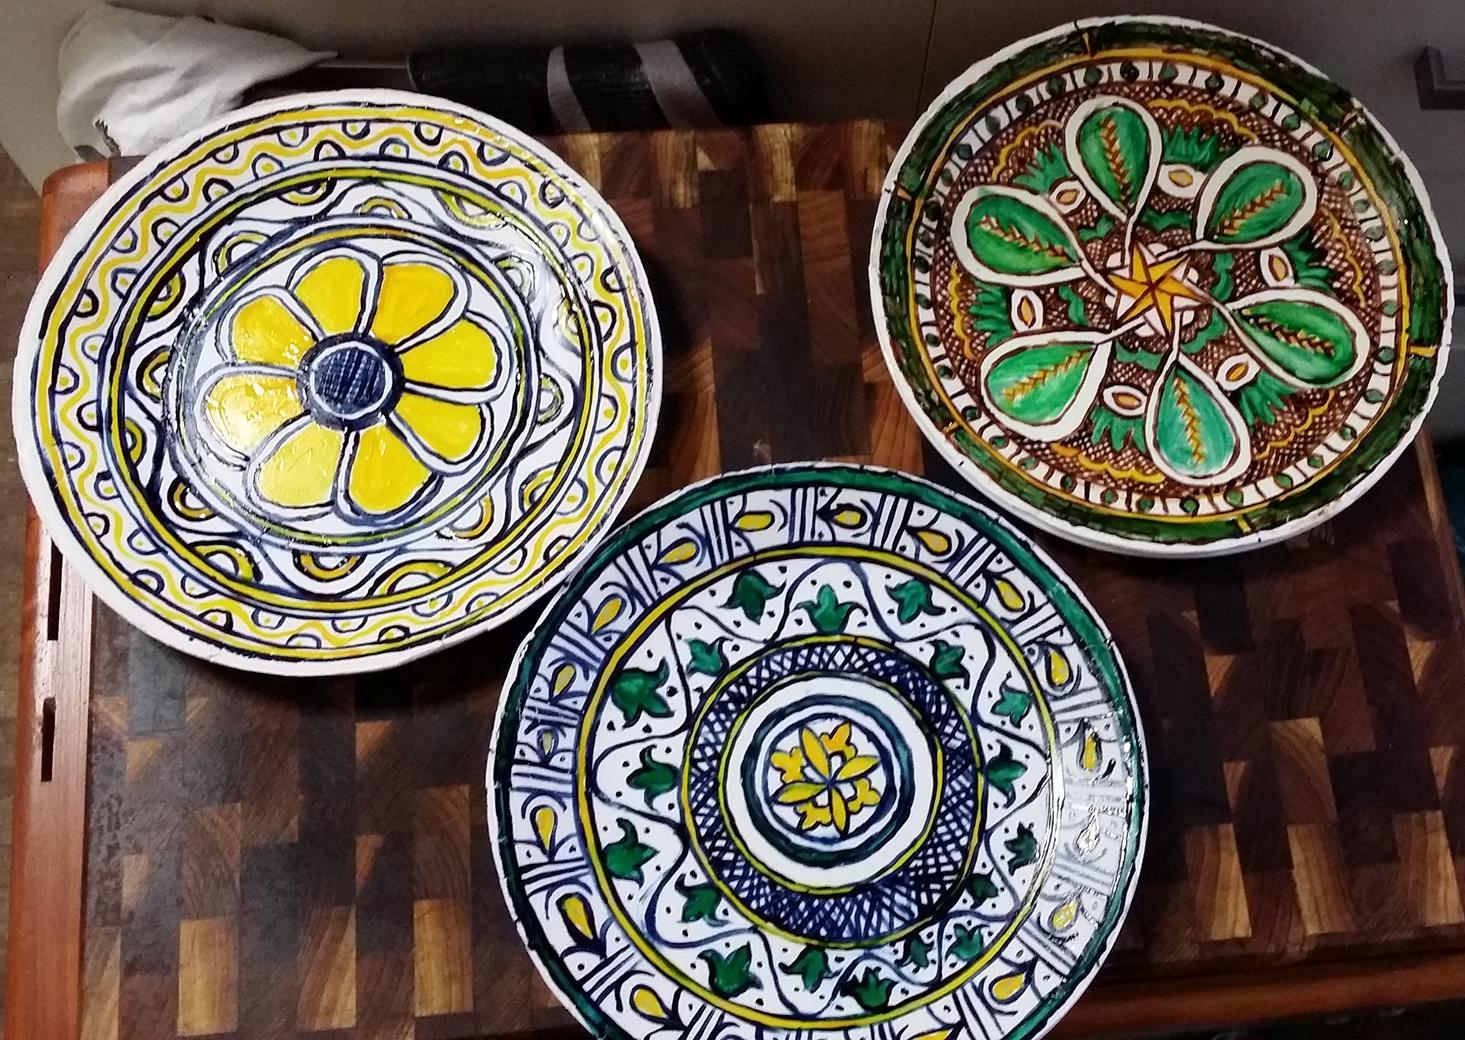 Sugarplate sotelties appearing as 15-16th century Italian ceramic plates. Photo and plates by Mistress Monique de la Maison Rouge, July 2014